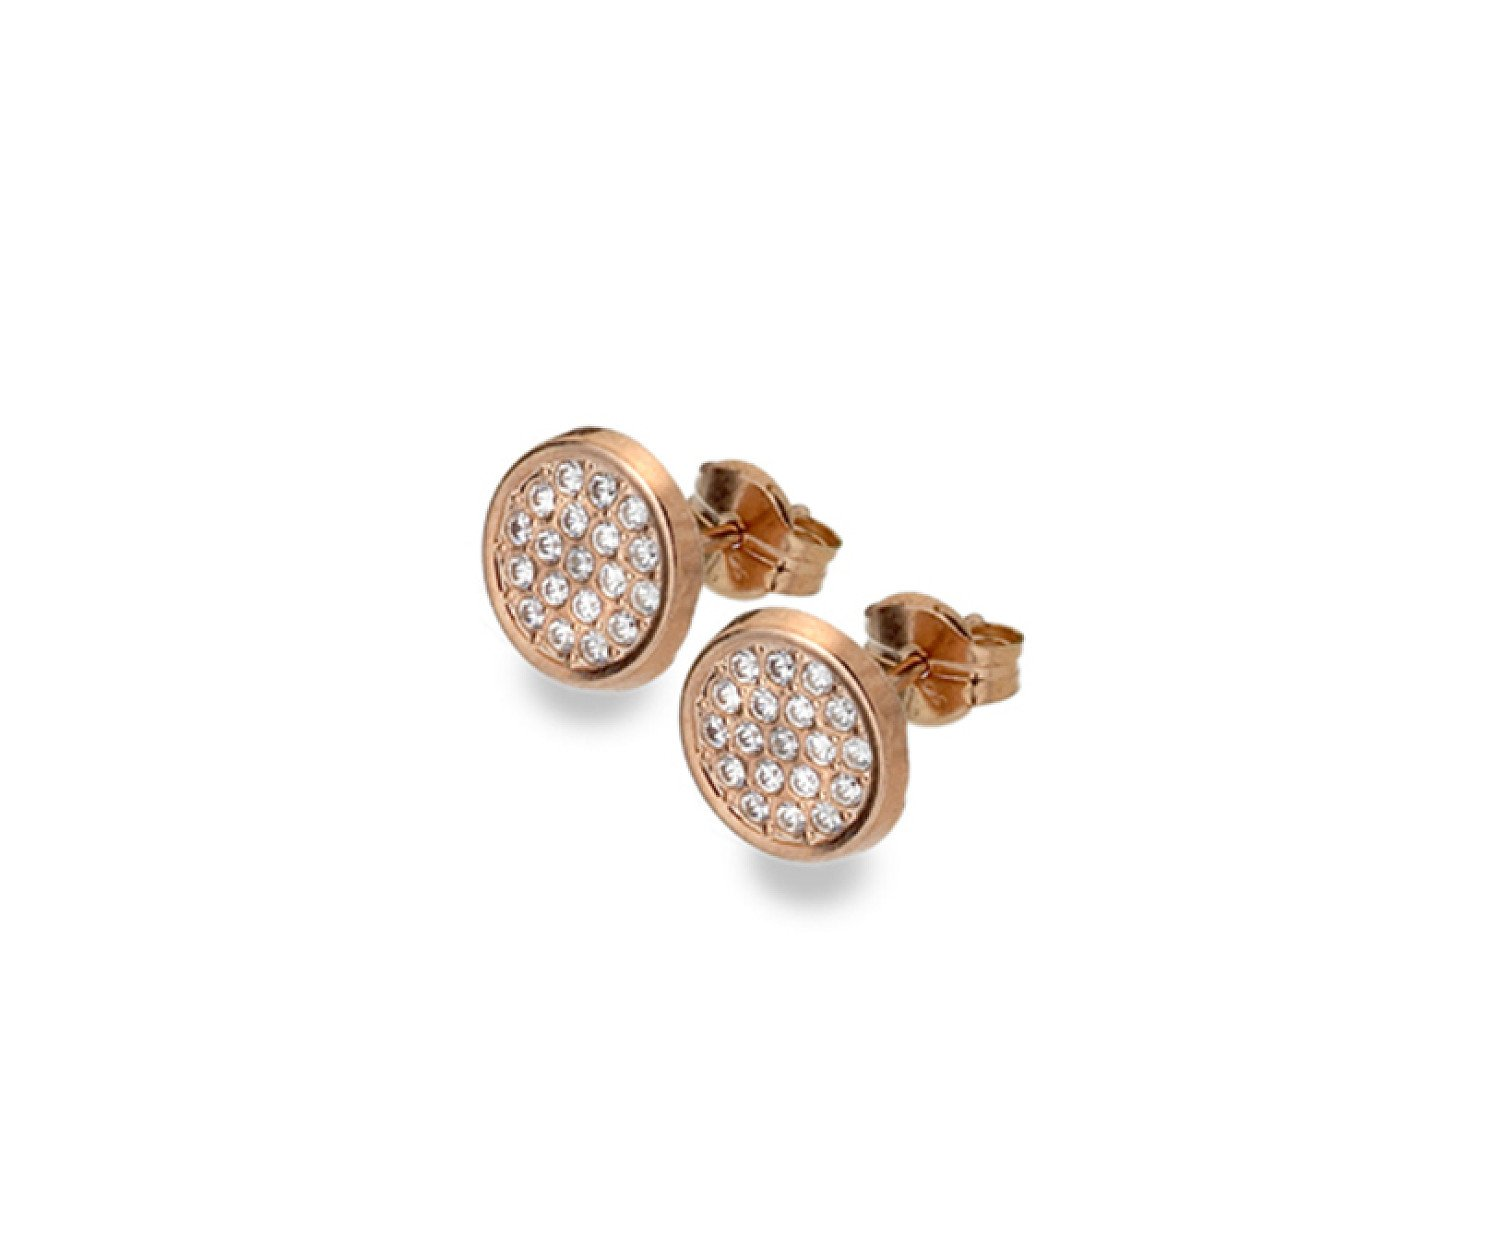 9ct rose gold, multi cubic zirconia set disc stud earrings from Callibeau Jewellery